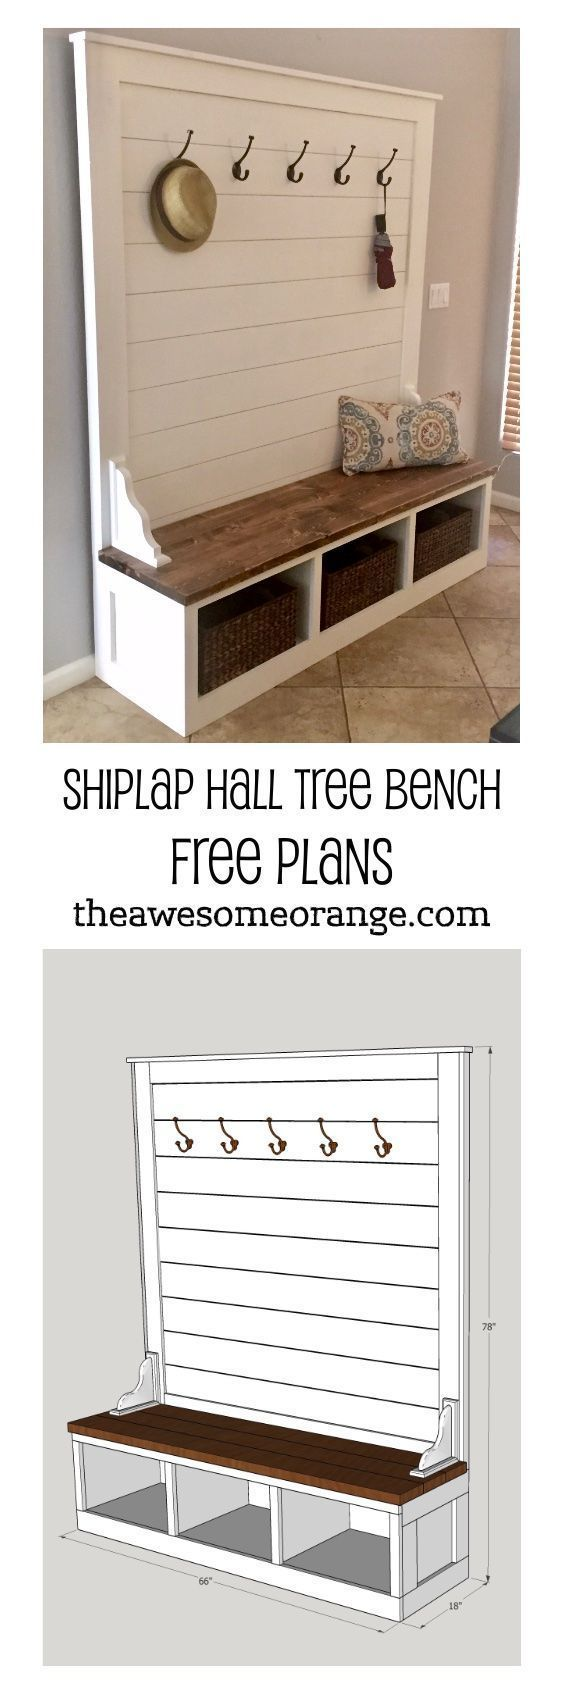 Shiplap Hall Tree Bench Plans Updated 1 8 19 The Awesome Orange In 2020 Hall Tree Bench Hall Tree Diy Storage Bench